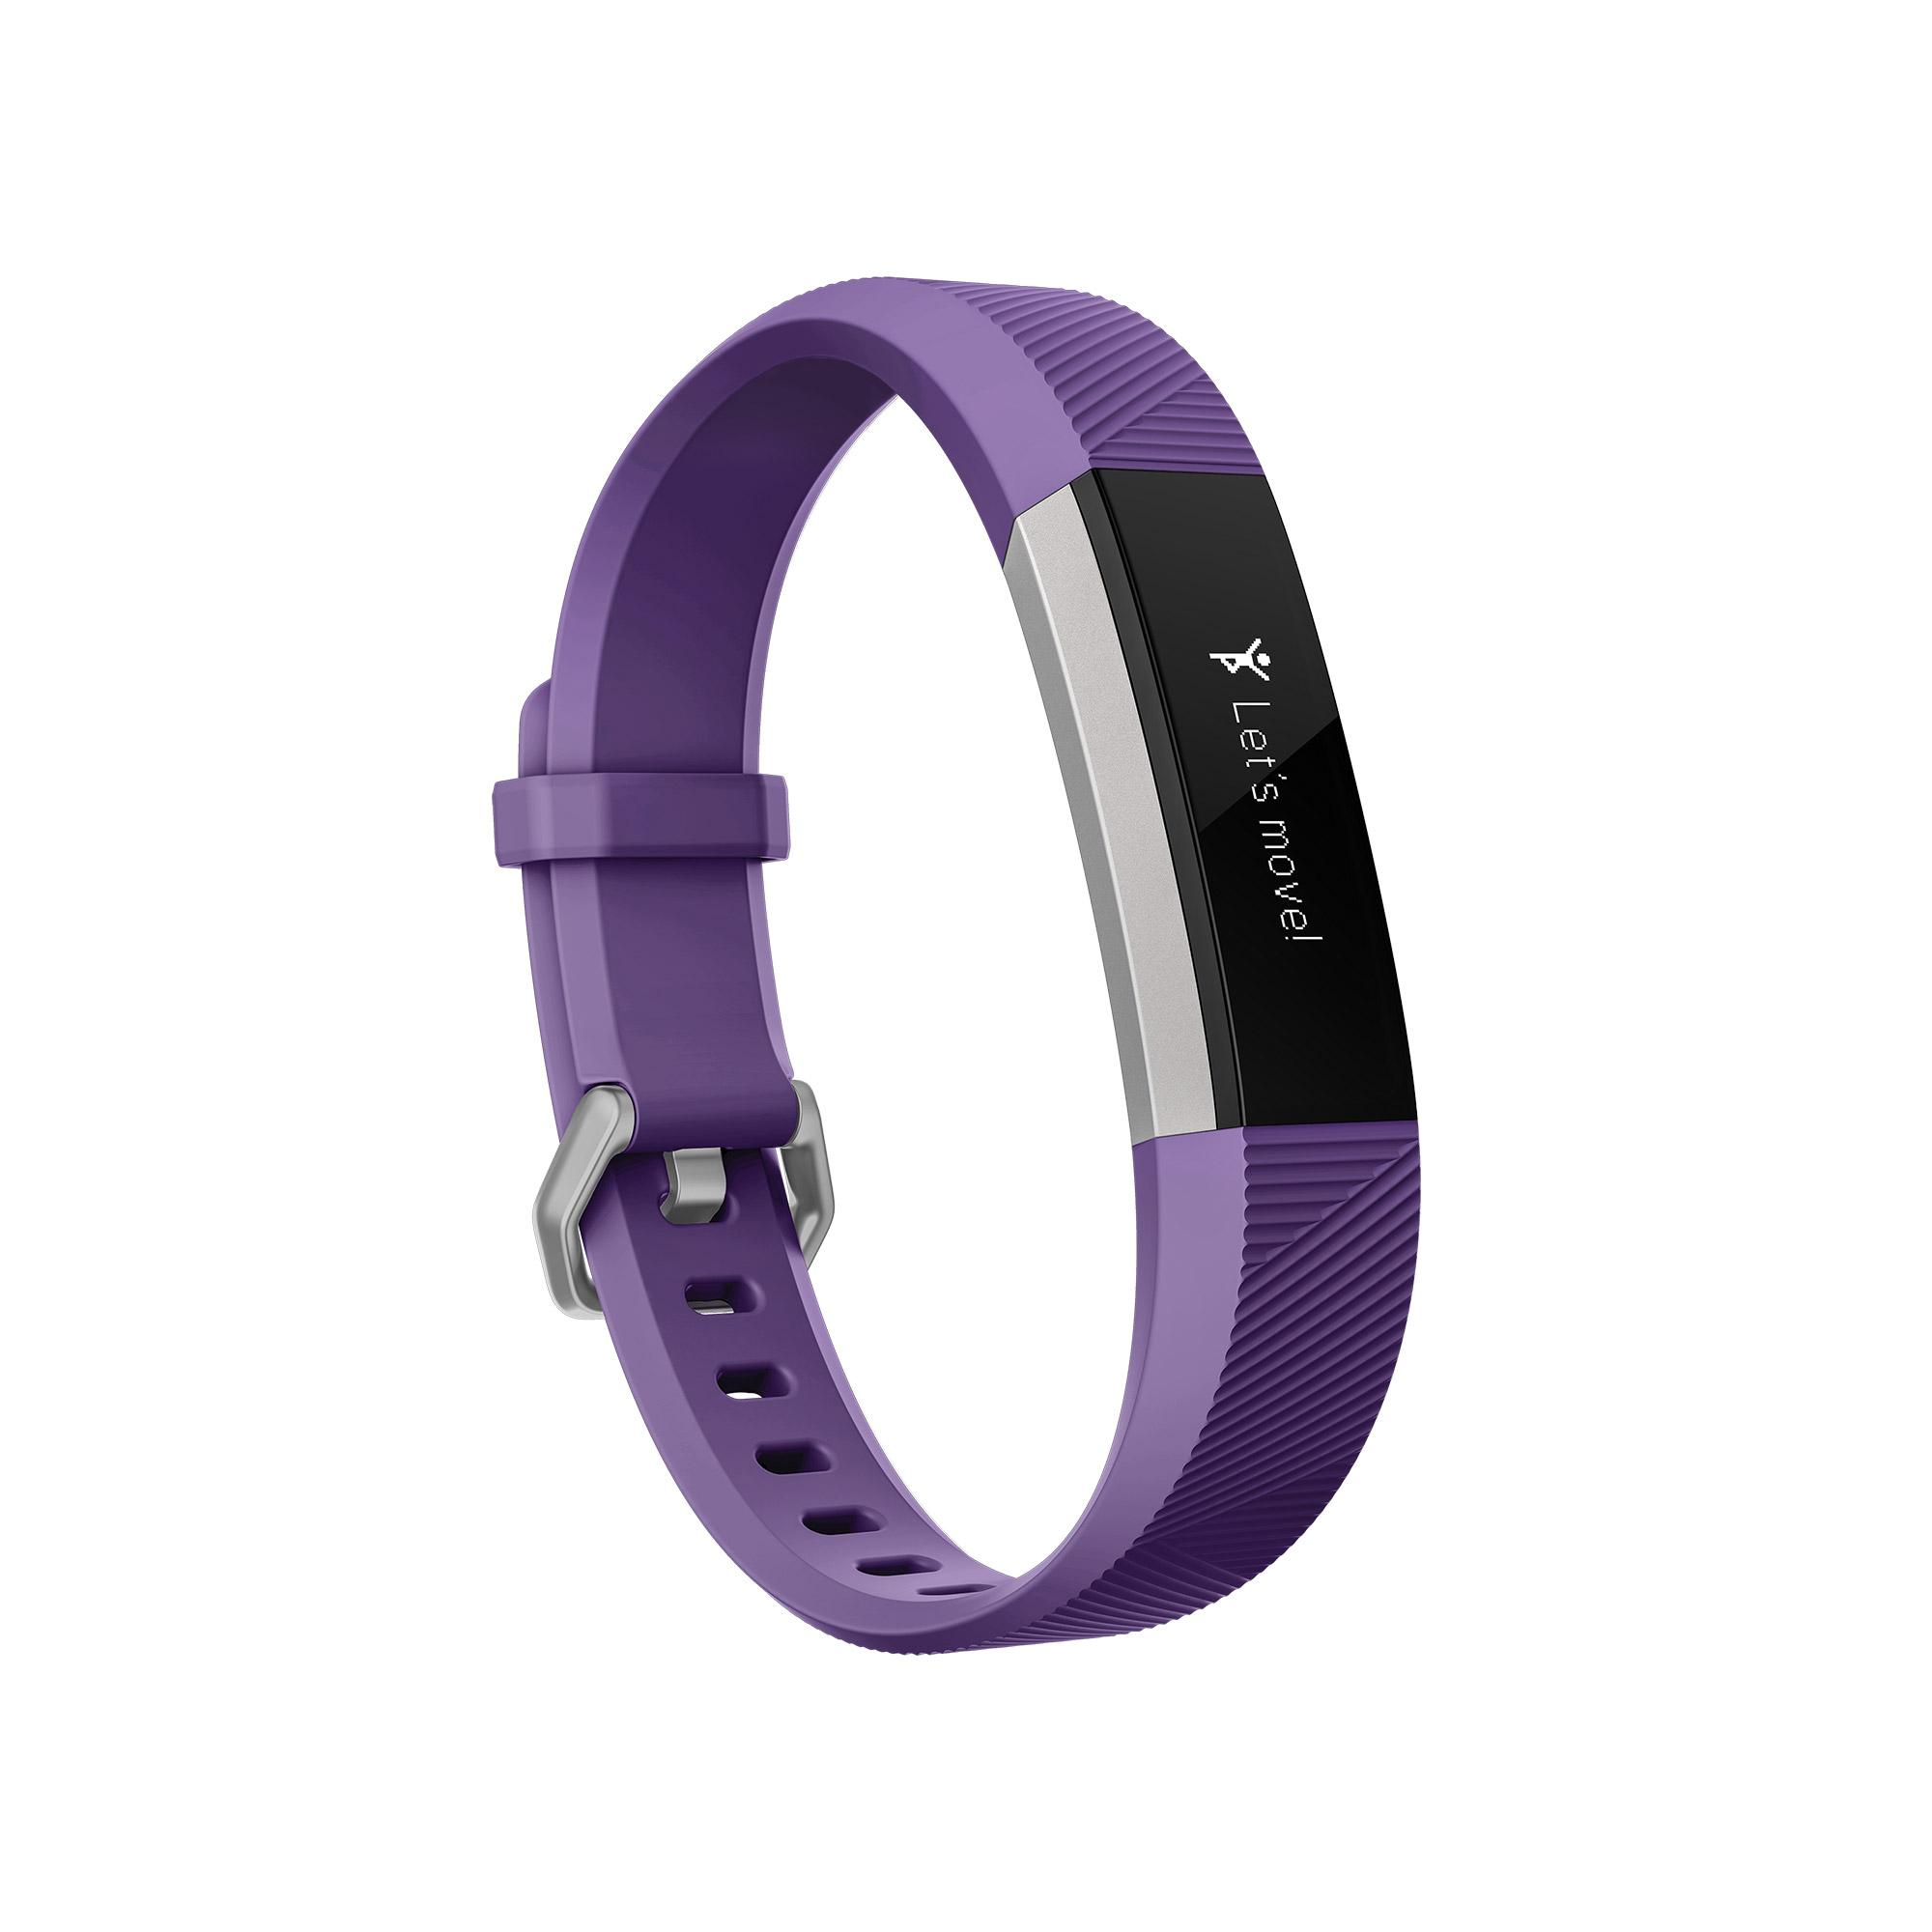 Cheap Fitbit Ace Activity Tracker For Kids 8 One Size 5 6 34